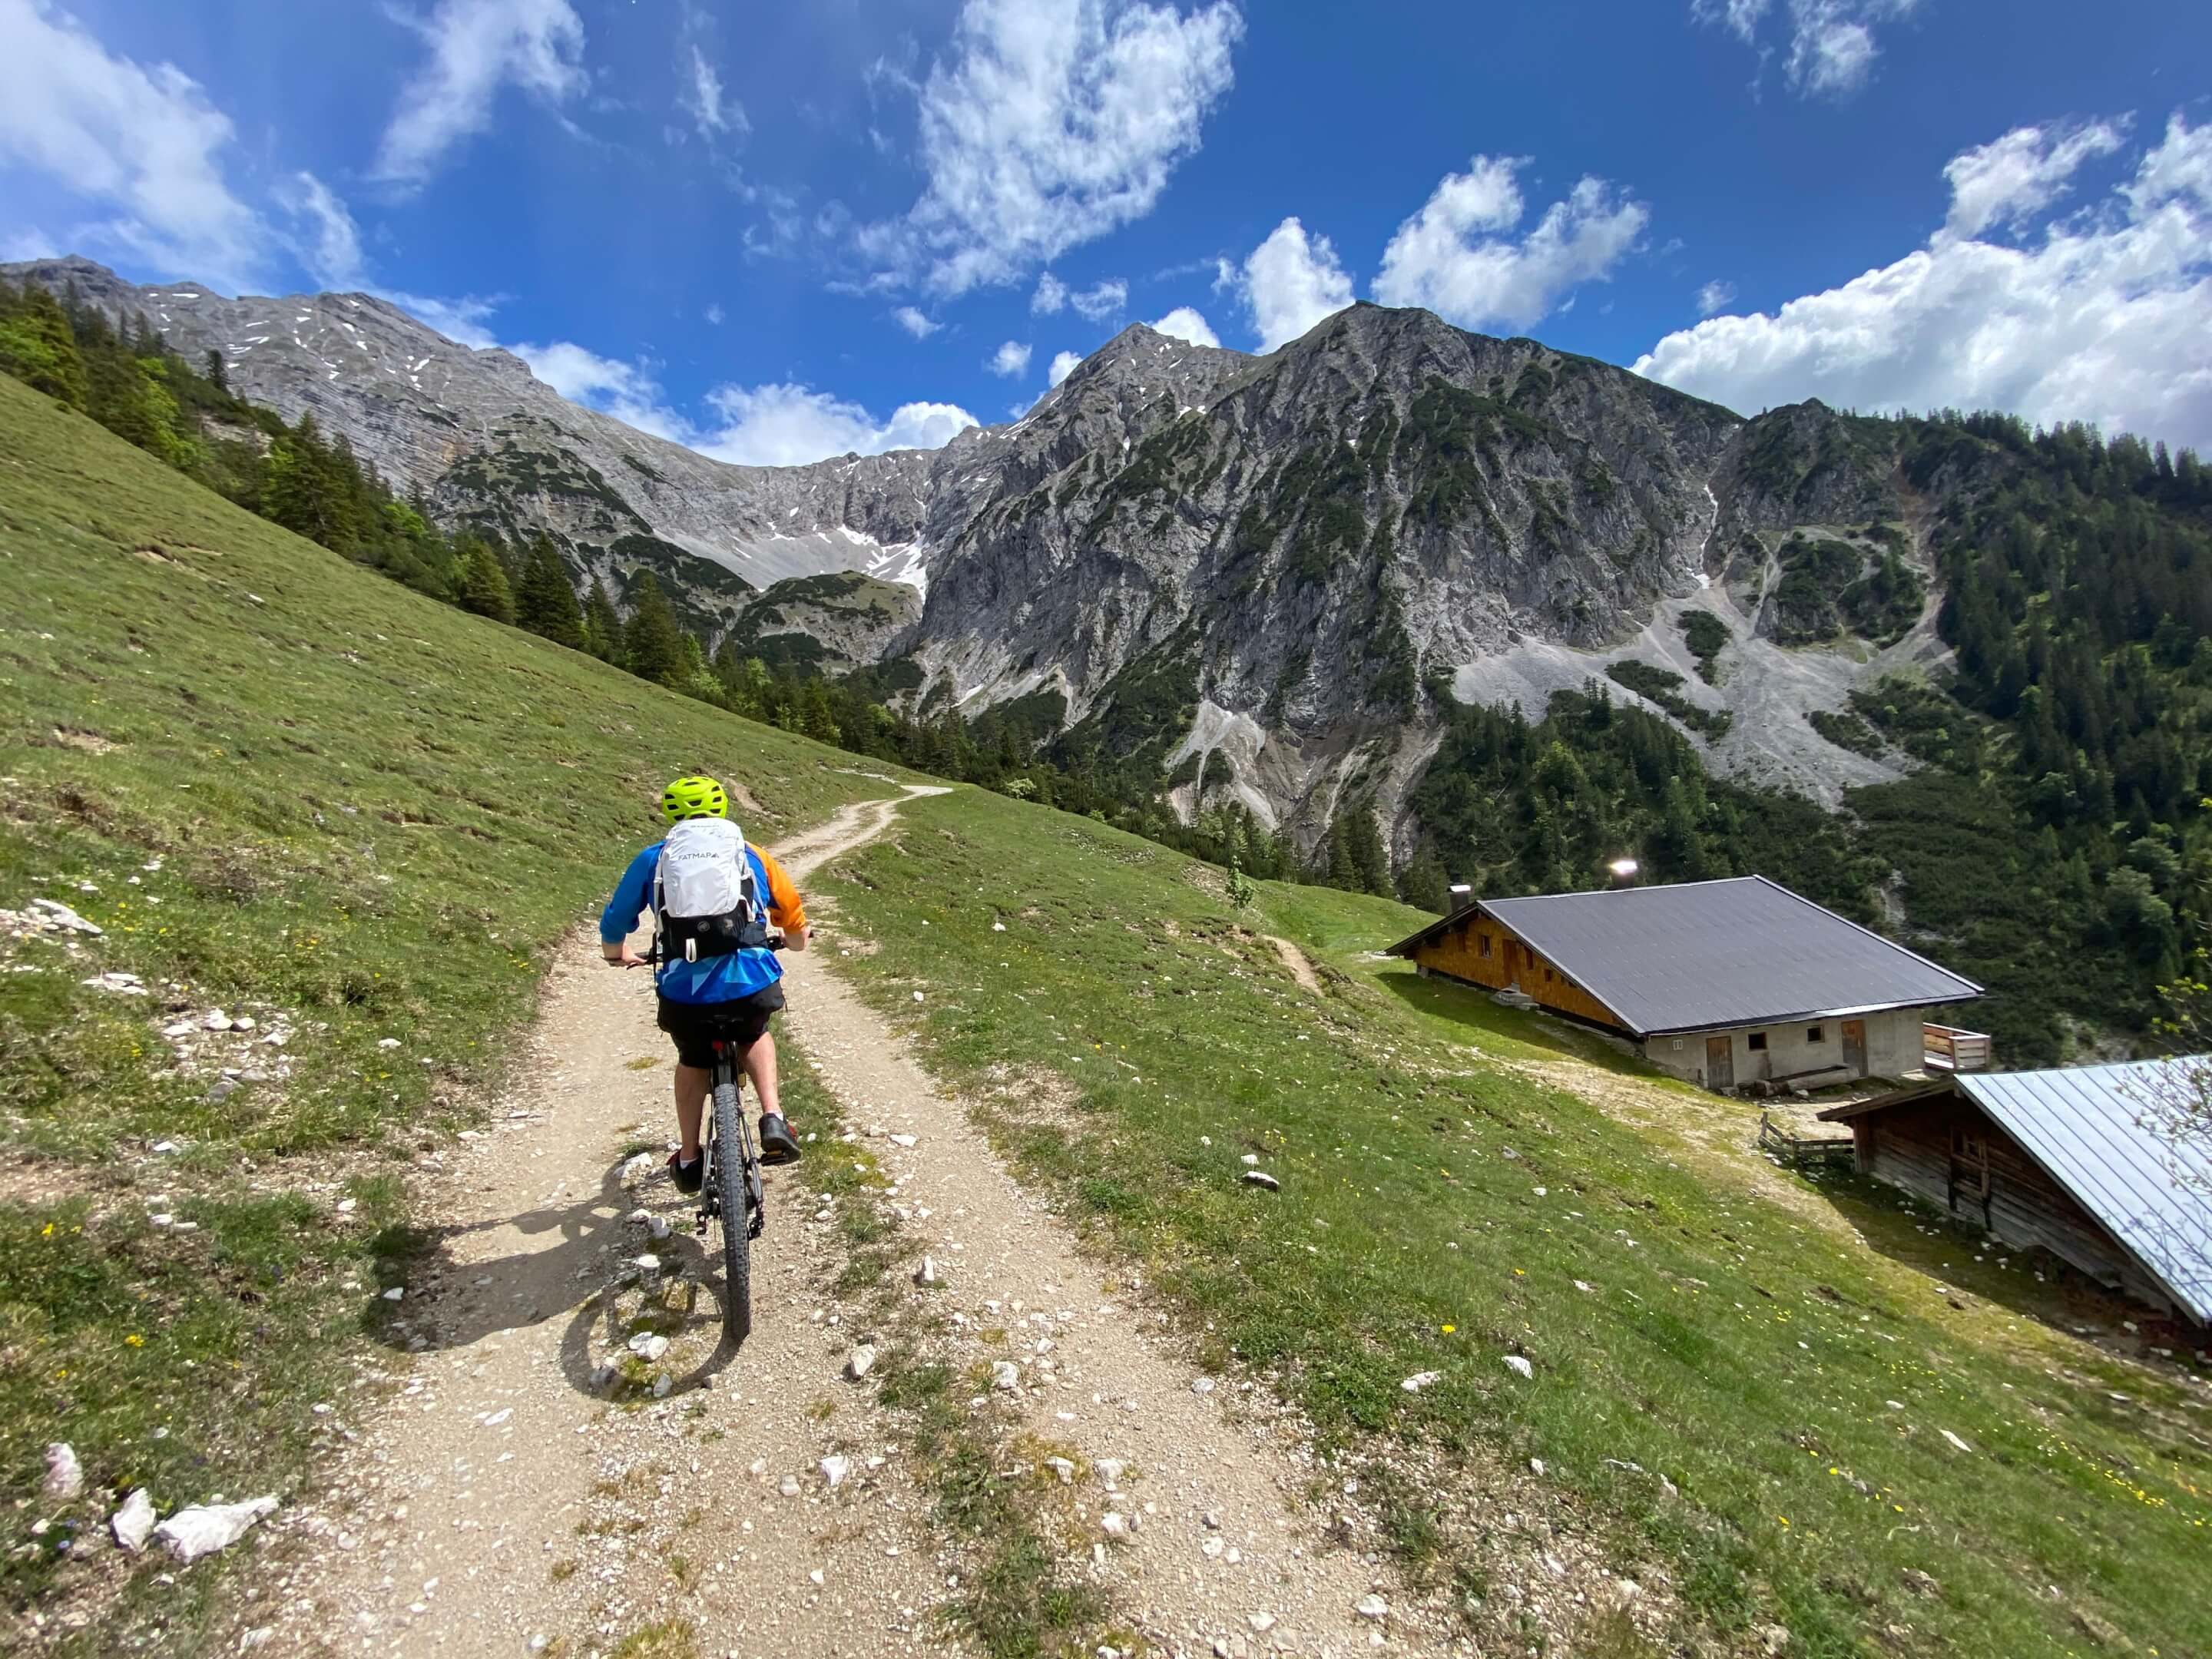 Dave on mountain bike ride in the alps